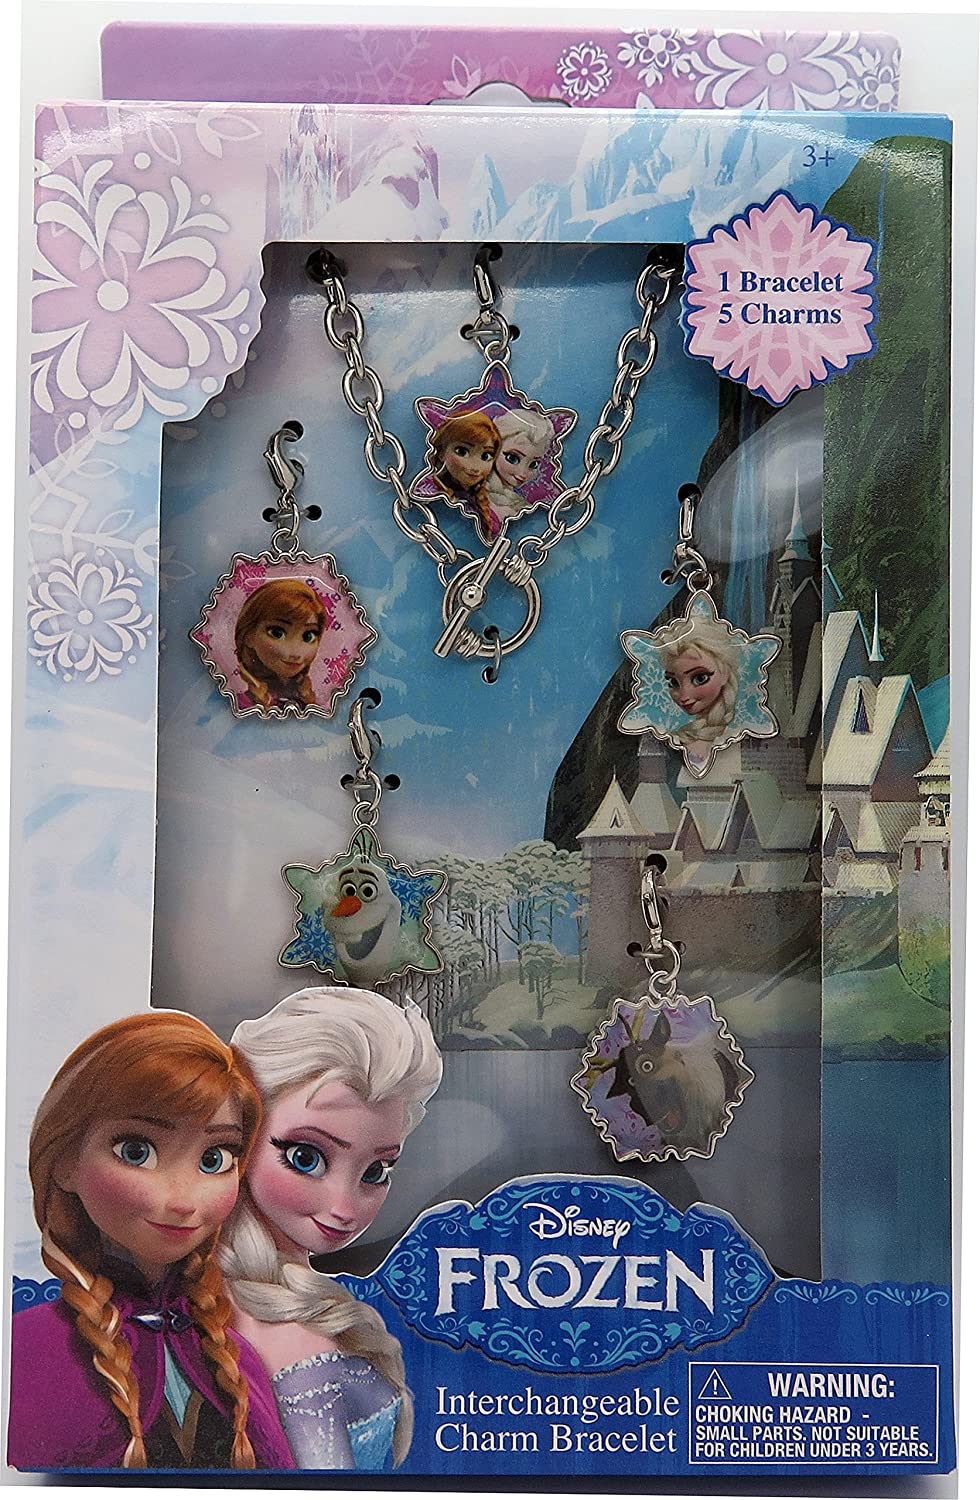 Disney Frozen Oklahoma City Mall Jewelry Box Set Bracelet Charm sold out Metal with